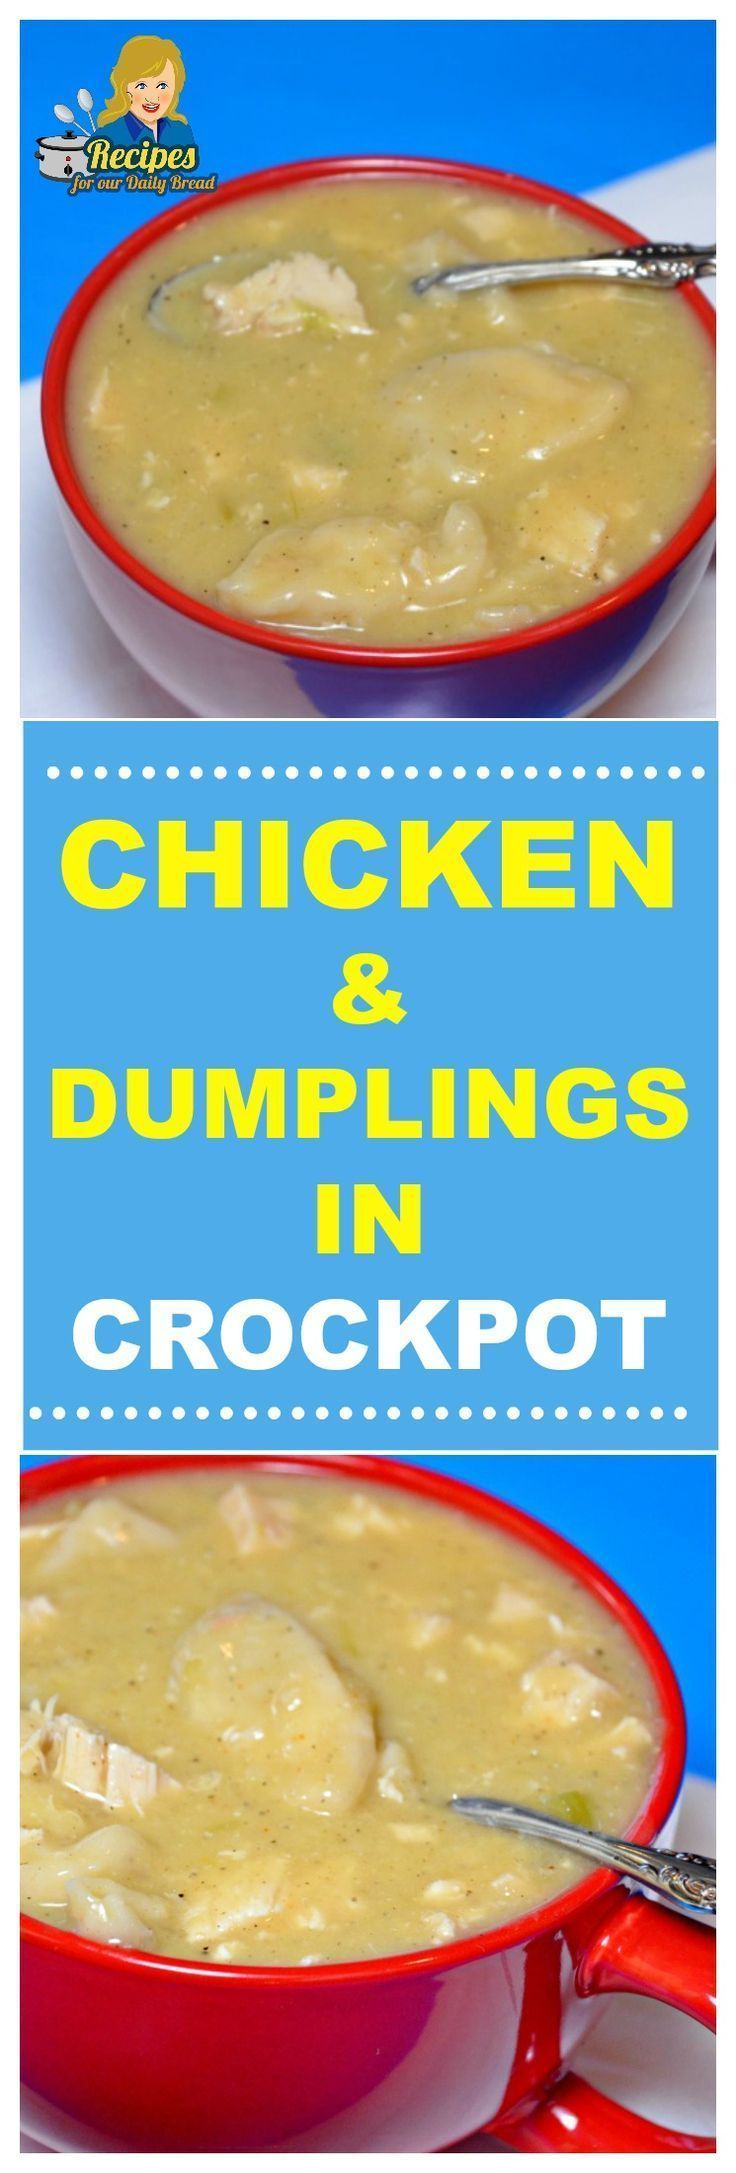 CHICKEN & DUMPLINGS COMPLETELY MADE IN YOUR CROCKPOT #chickendumplingscrockpot Easy and Delicious CROCK POT CHICKEN DUMPLINGS  Crock Pot Chicken & Dumplings Are So Much Easier To Make Than The Homemade Version. #crockpot #slowcooker #chicken #soup #chickendumplingscrockpot CHICKEN & DUMPLINGS COMPLETELY MADE IN YOUR CROCKPOT #chickendumplingscrockpot Easy and Delicious CROCK POT CHICKEN DUMPLINGS  Crock Pot Chicken & Dumplings Are So Much Easier To Make Than The Homemade Version. #crockpot #slow #chickendumplingscrockpot